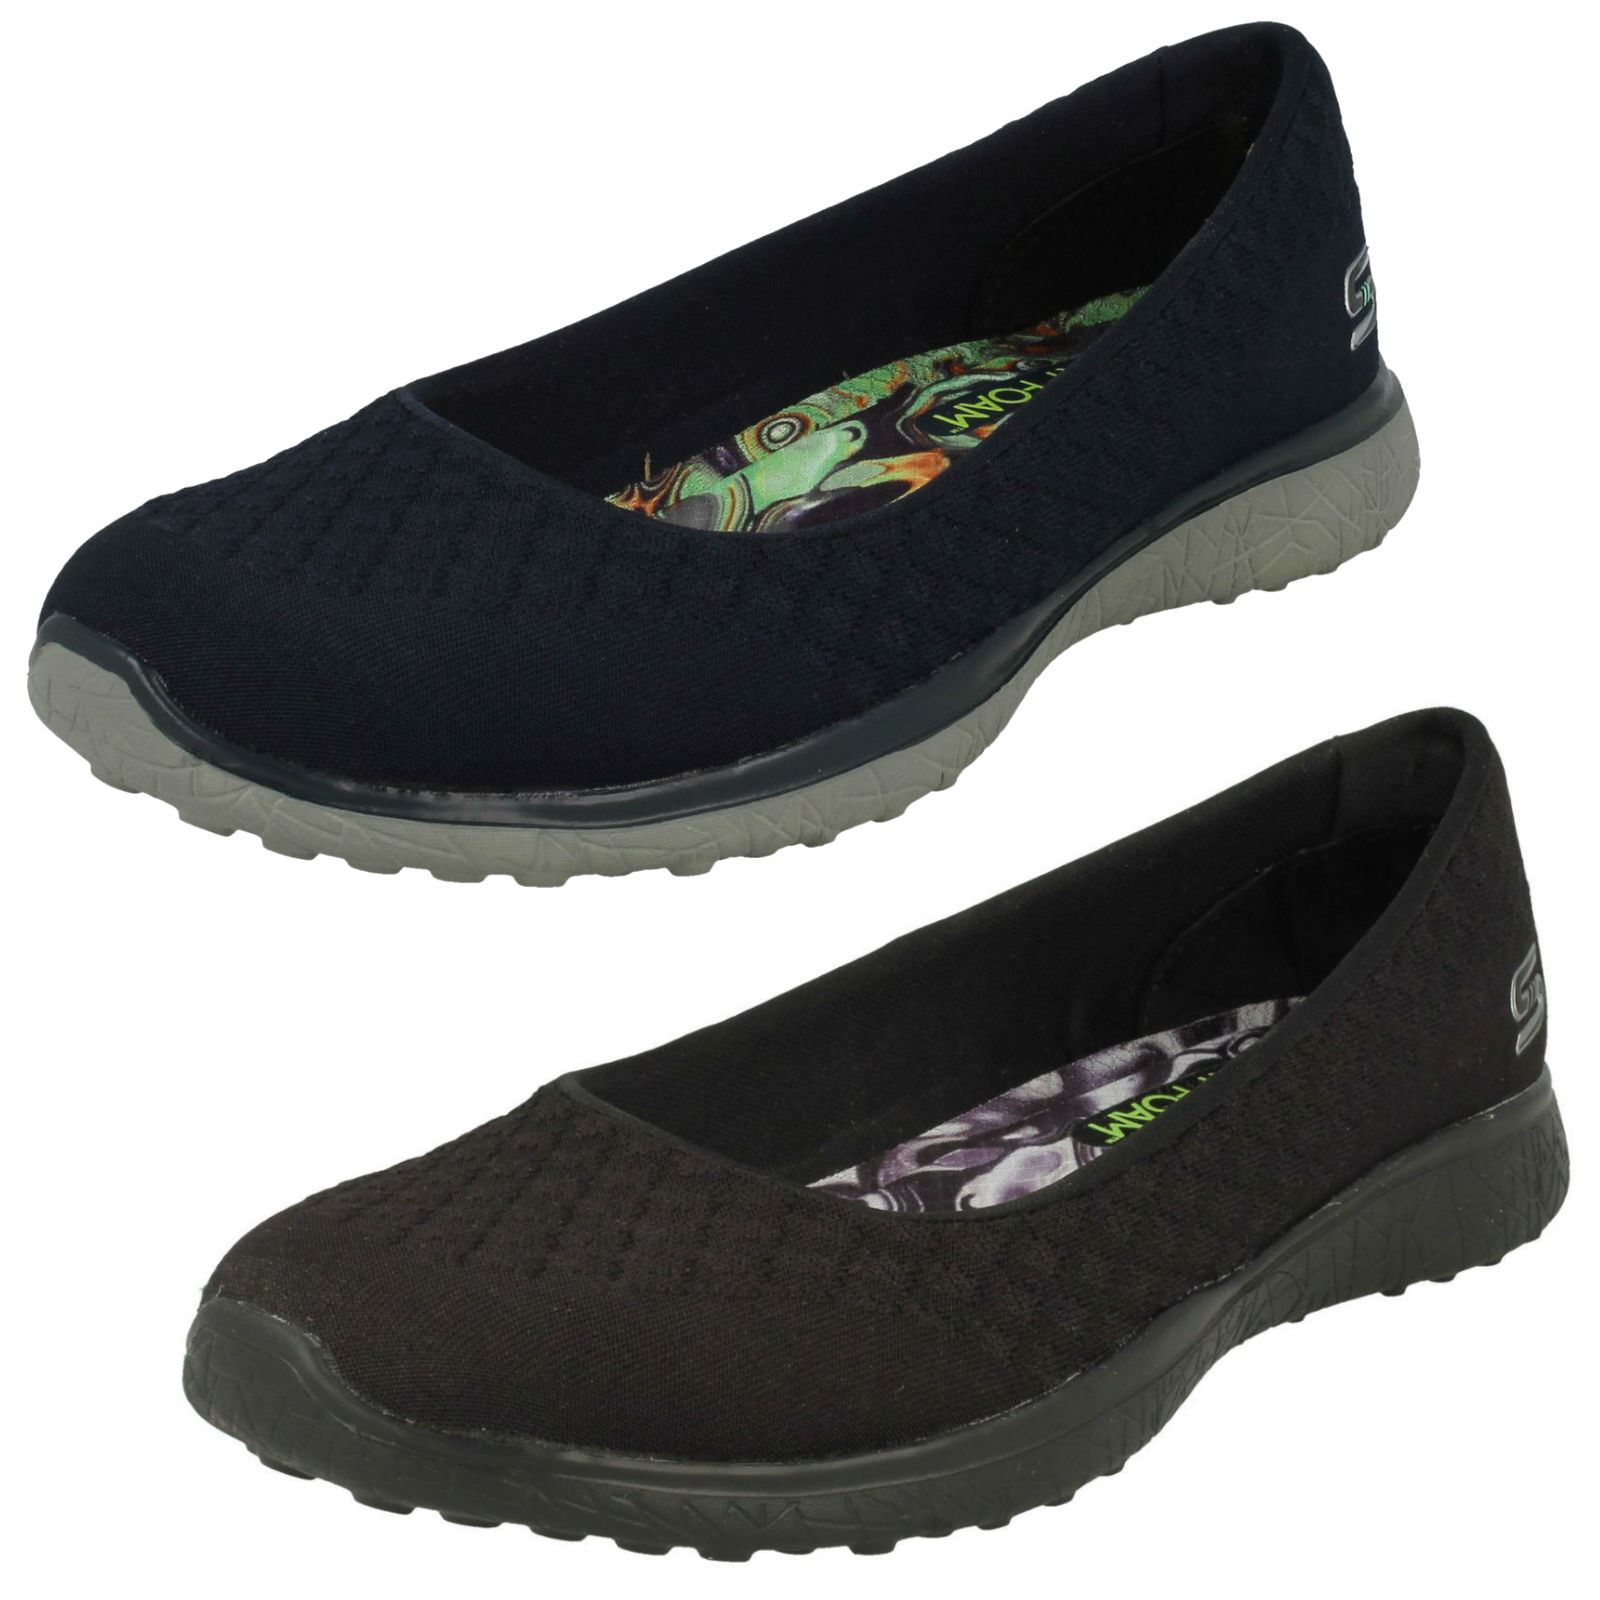 Ladies Skechers Memory Foam Shoes 'One